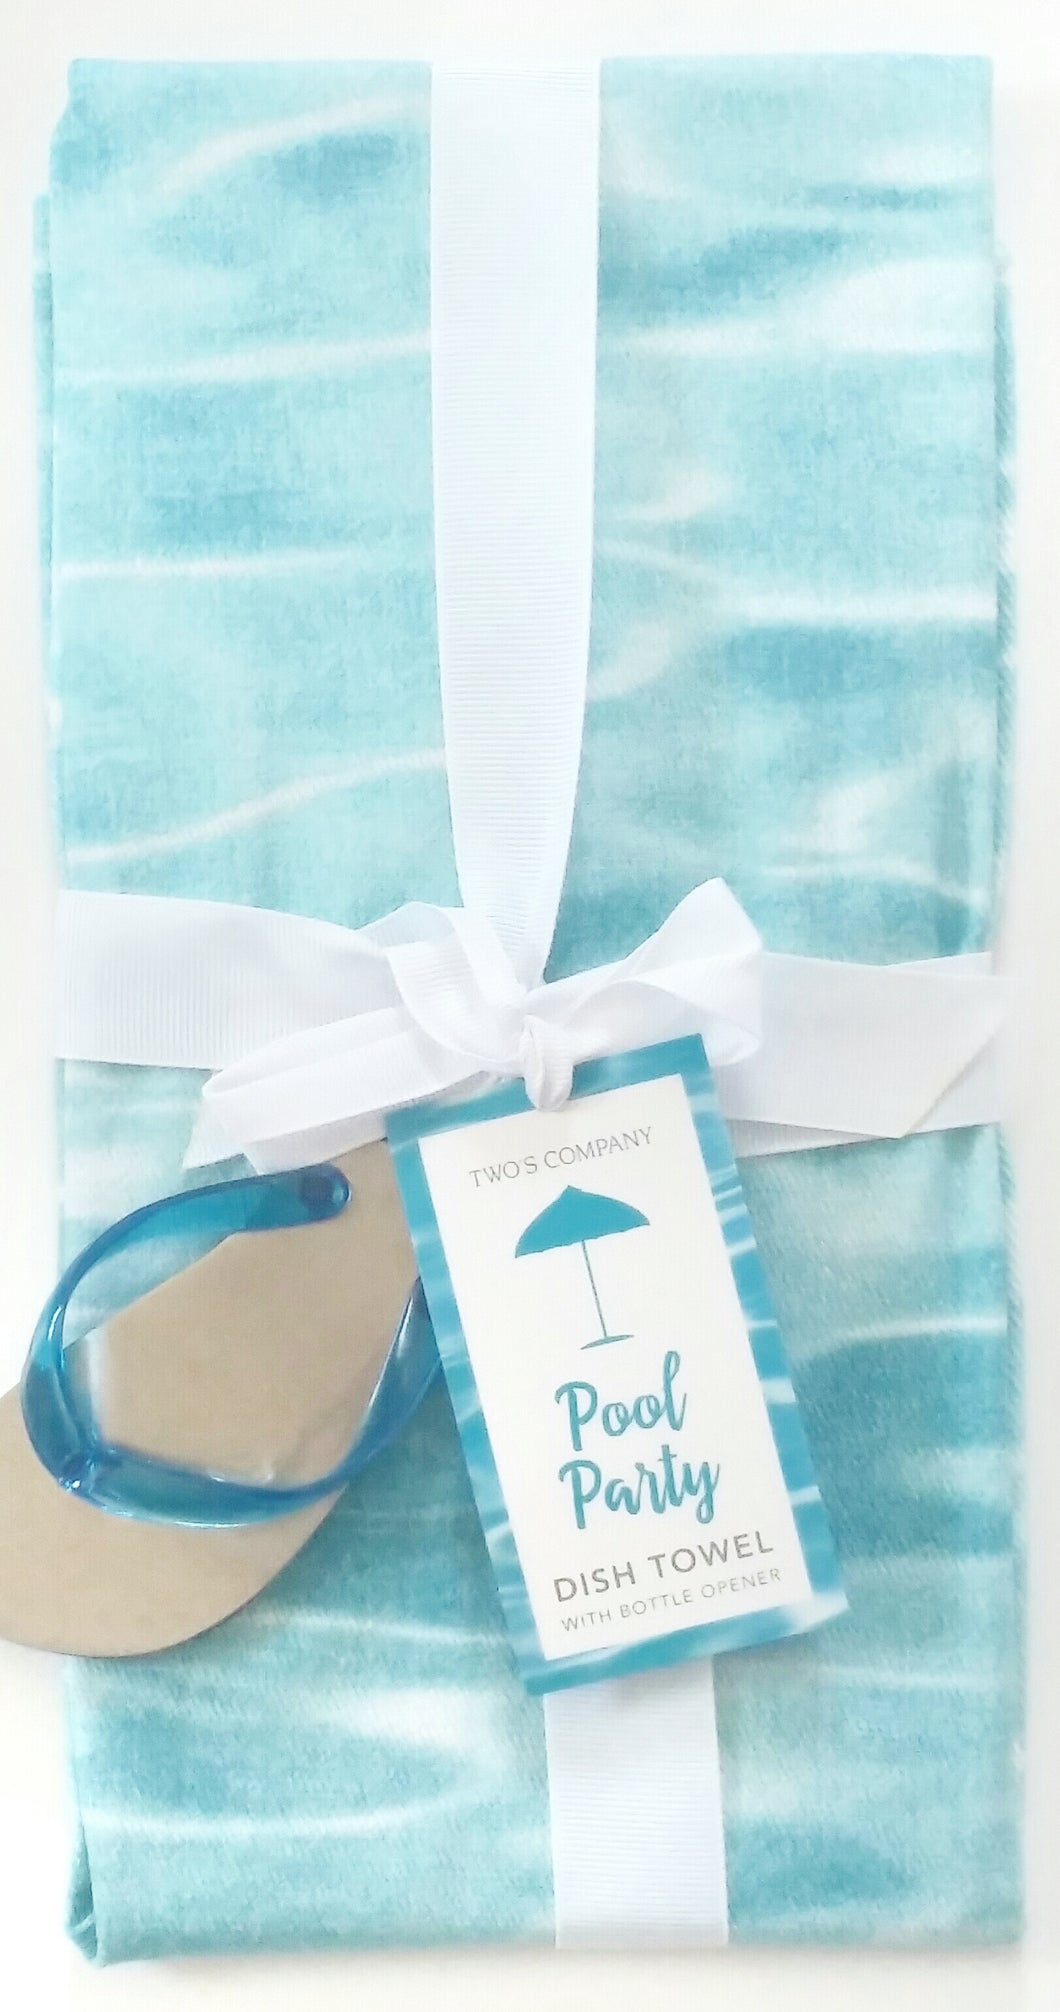 Two's Company Pool Party Dish Towel w/Bottle Opener